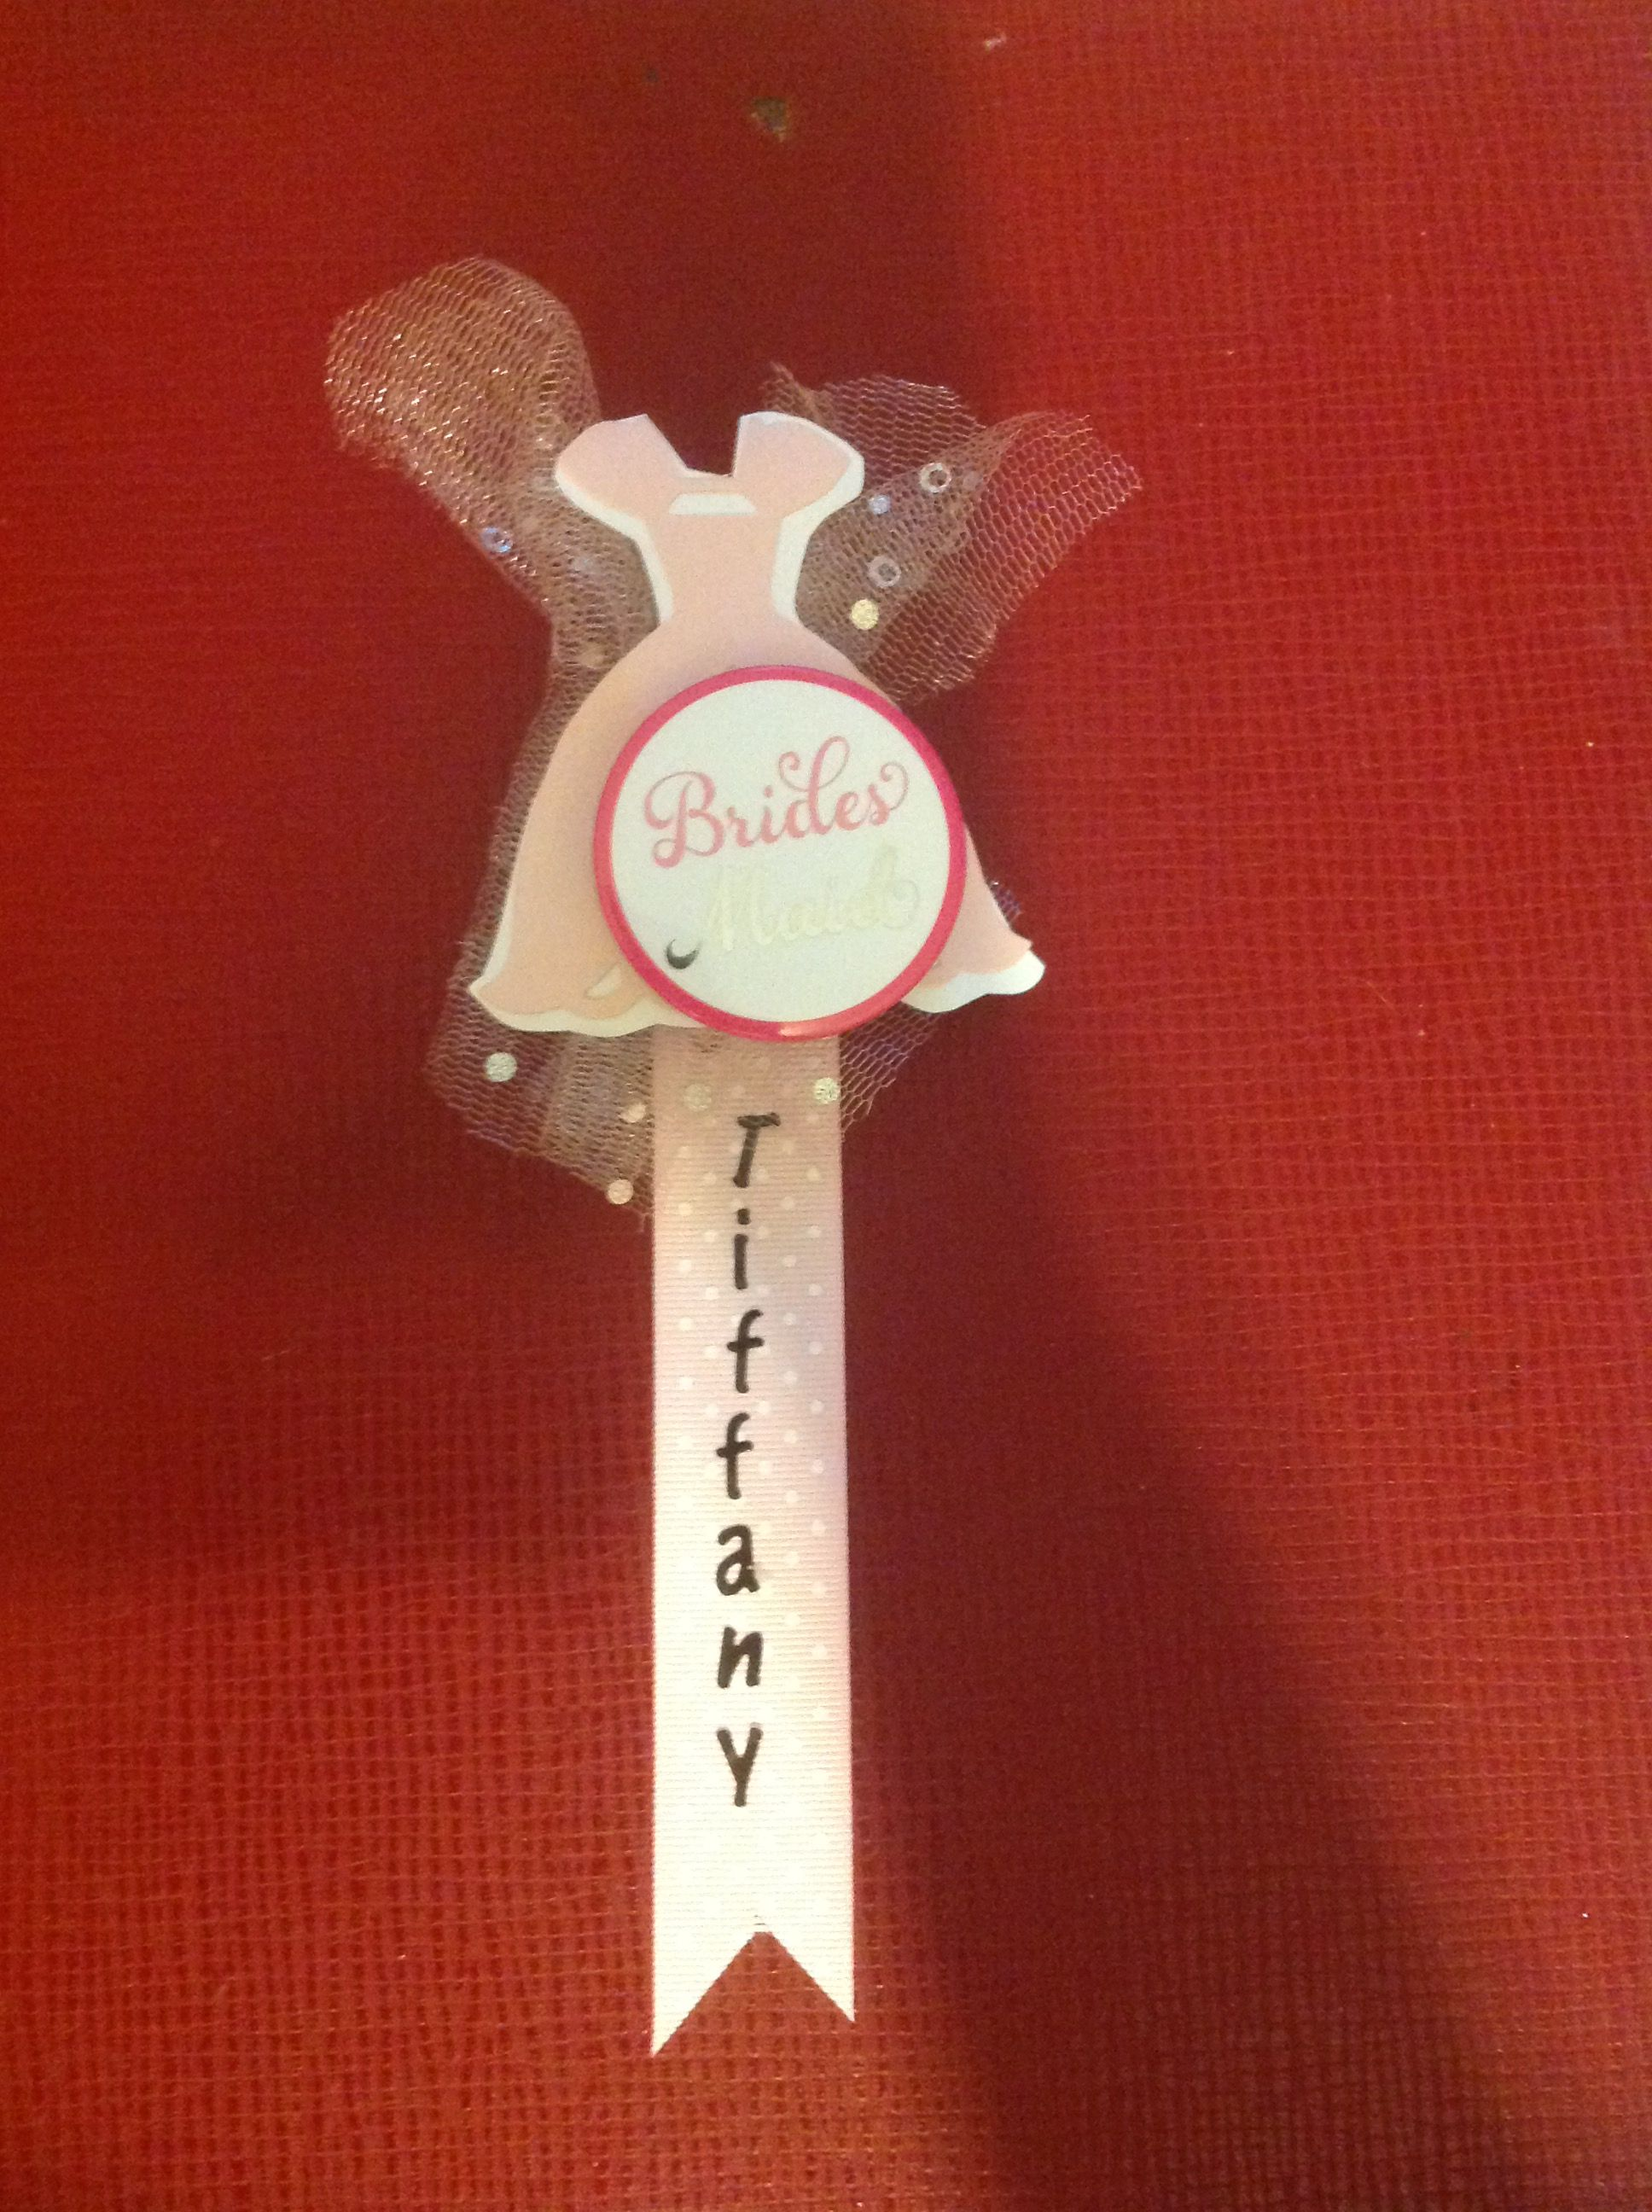 Name tags for wedding party at bridal shower